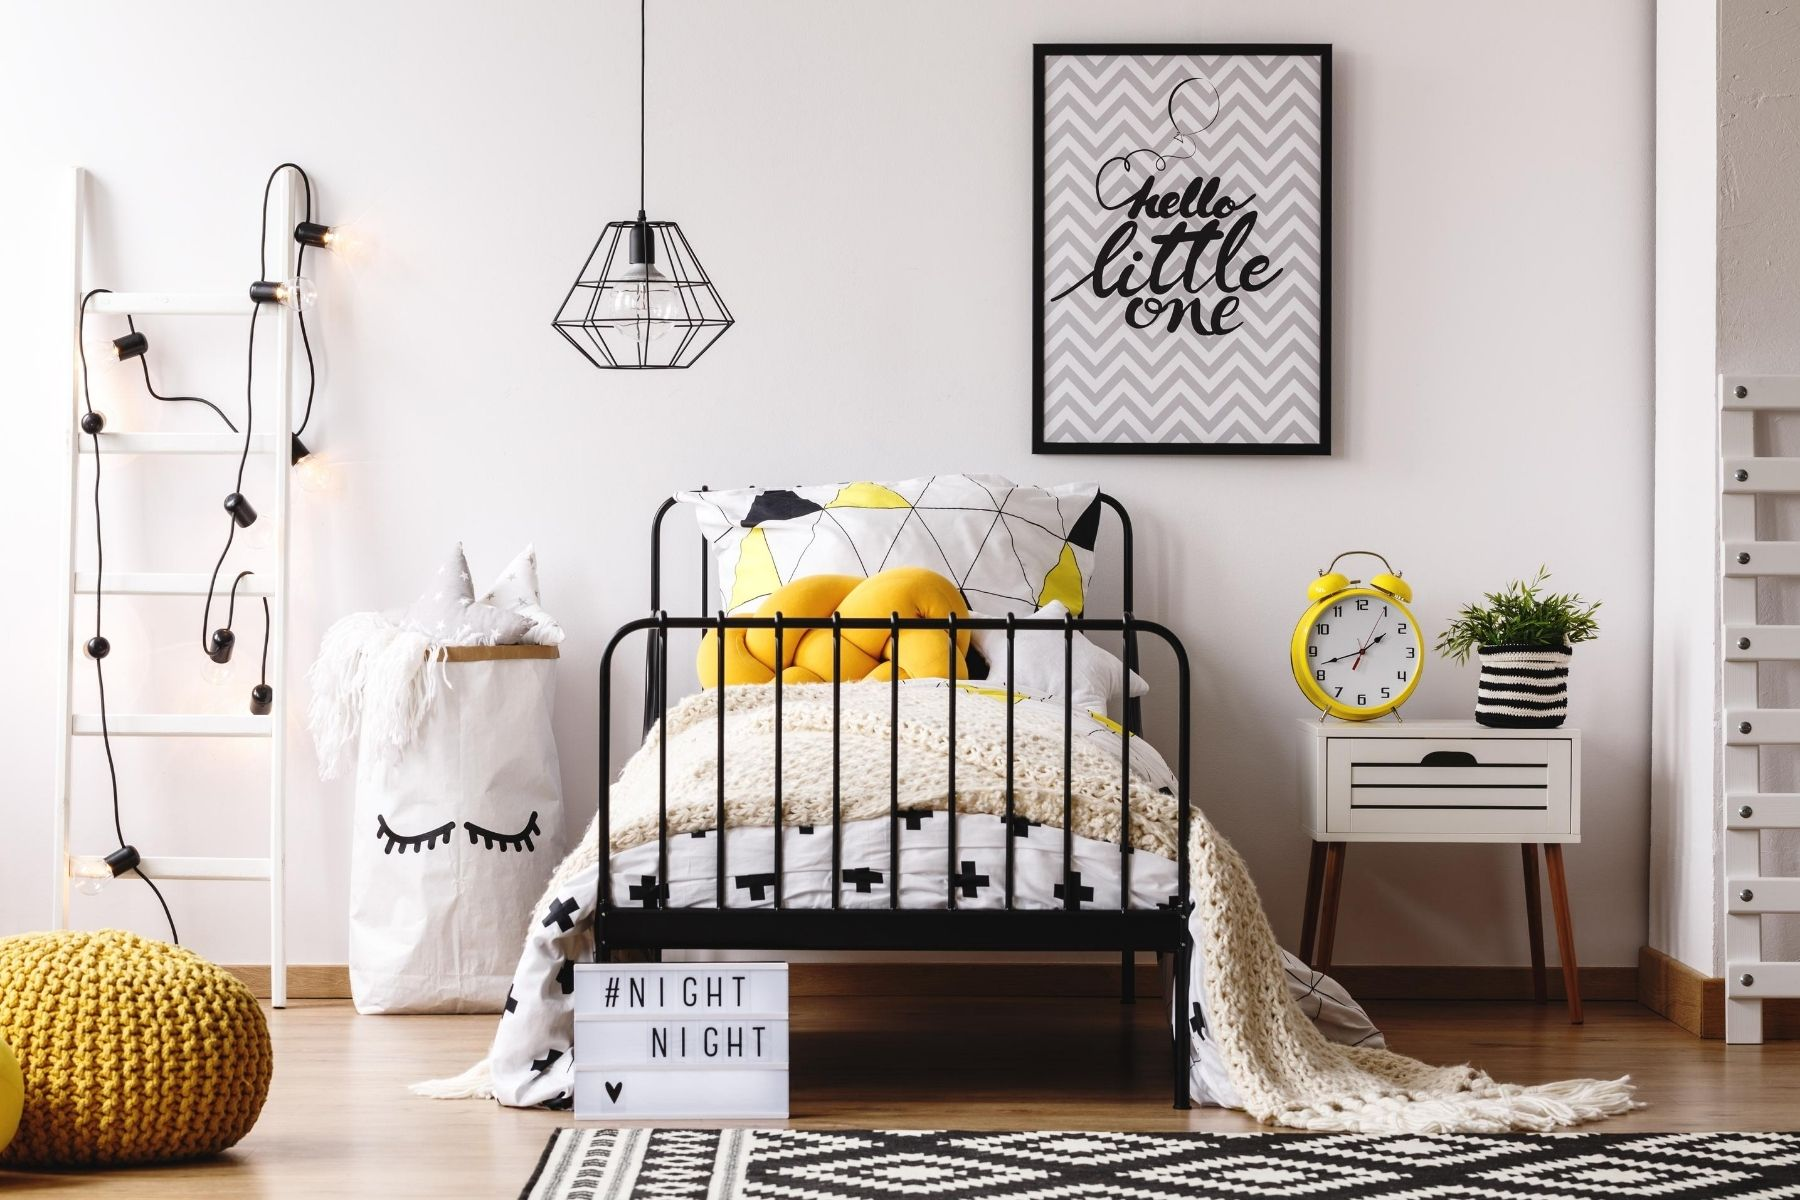 HappyFresh_Best_Idea_To_Decorate_Your_Small_Bedroom_Wall_Light